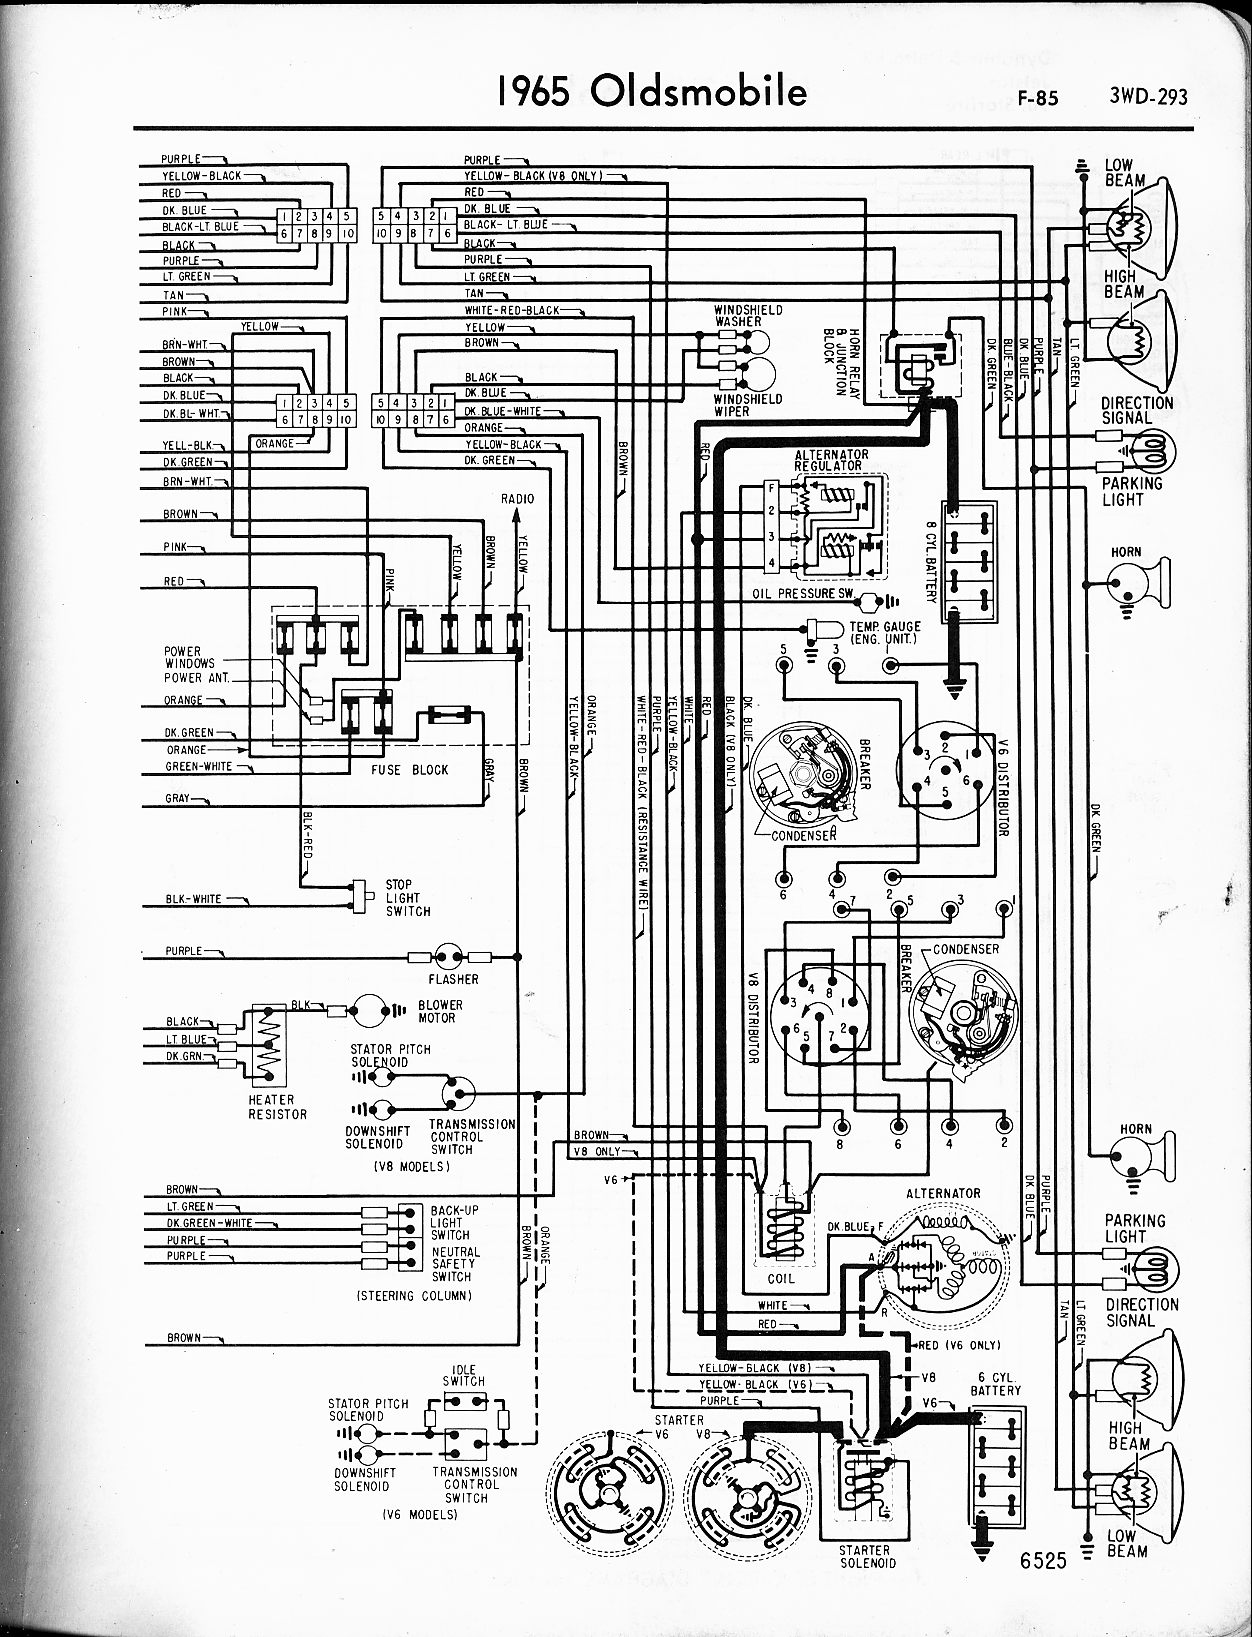 85 Delta 88 Fuse Box Wiring Diagram Schematics 1974 Corvette Location Oldsmobile Diagrams The Old Car Manual Project 1983 Royale Brougham